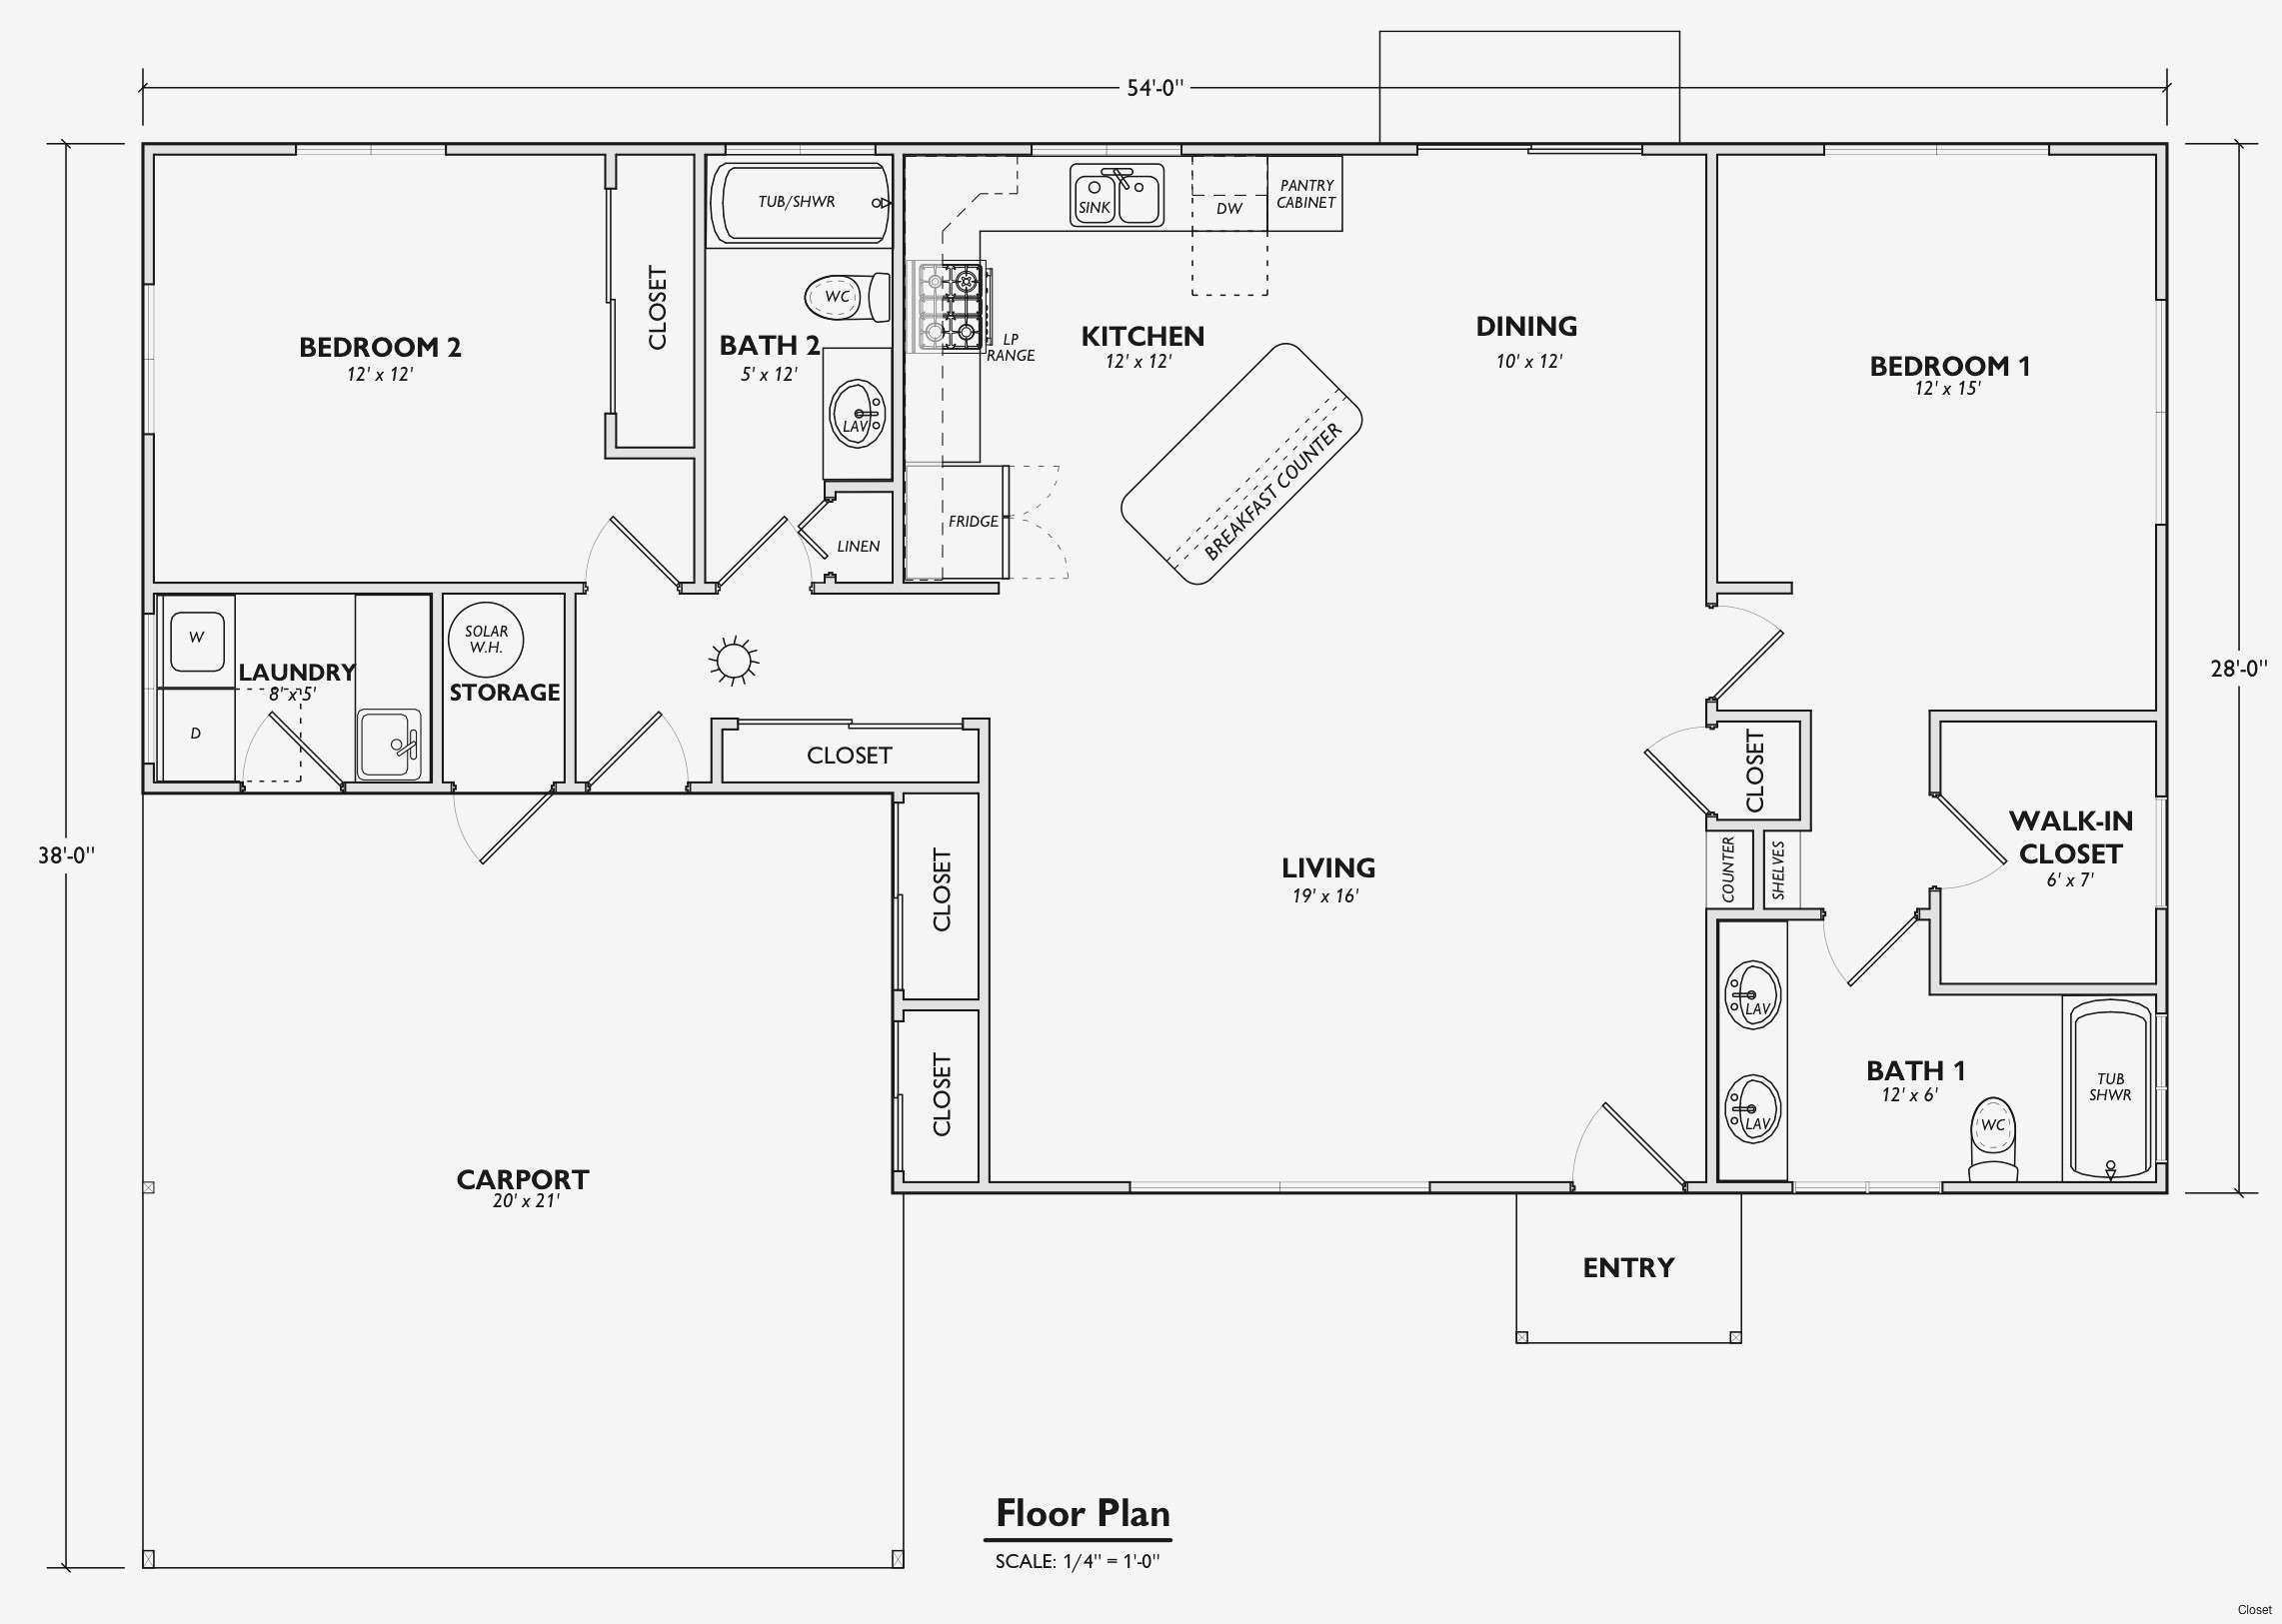 Best ideas about Average Master Bedroom Size . Save or Pin Average Master Bedroom Size Fresh Average Size A Master Now.